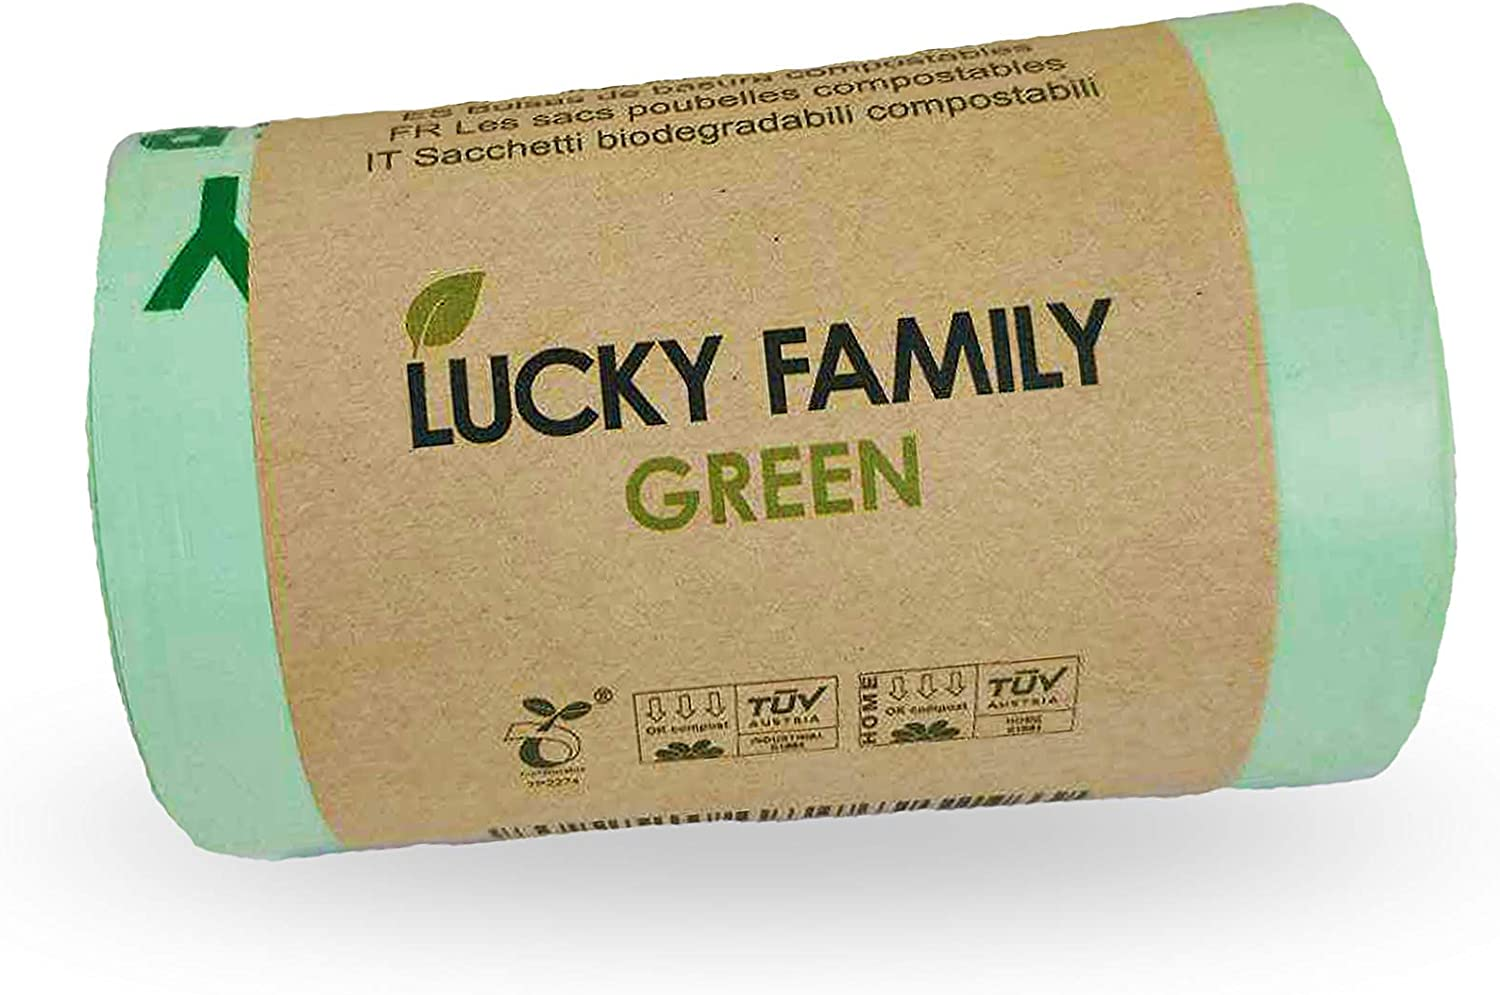 Lucky Family Green Compost Bags for Kitchen Countertop Bin 1.3 up to 1.6 Gallon - 100% Compostable Food Waste Trash Repurpose - Perfect Biodegradable Organic Eco Friendly - 50 Bags per Roll